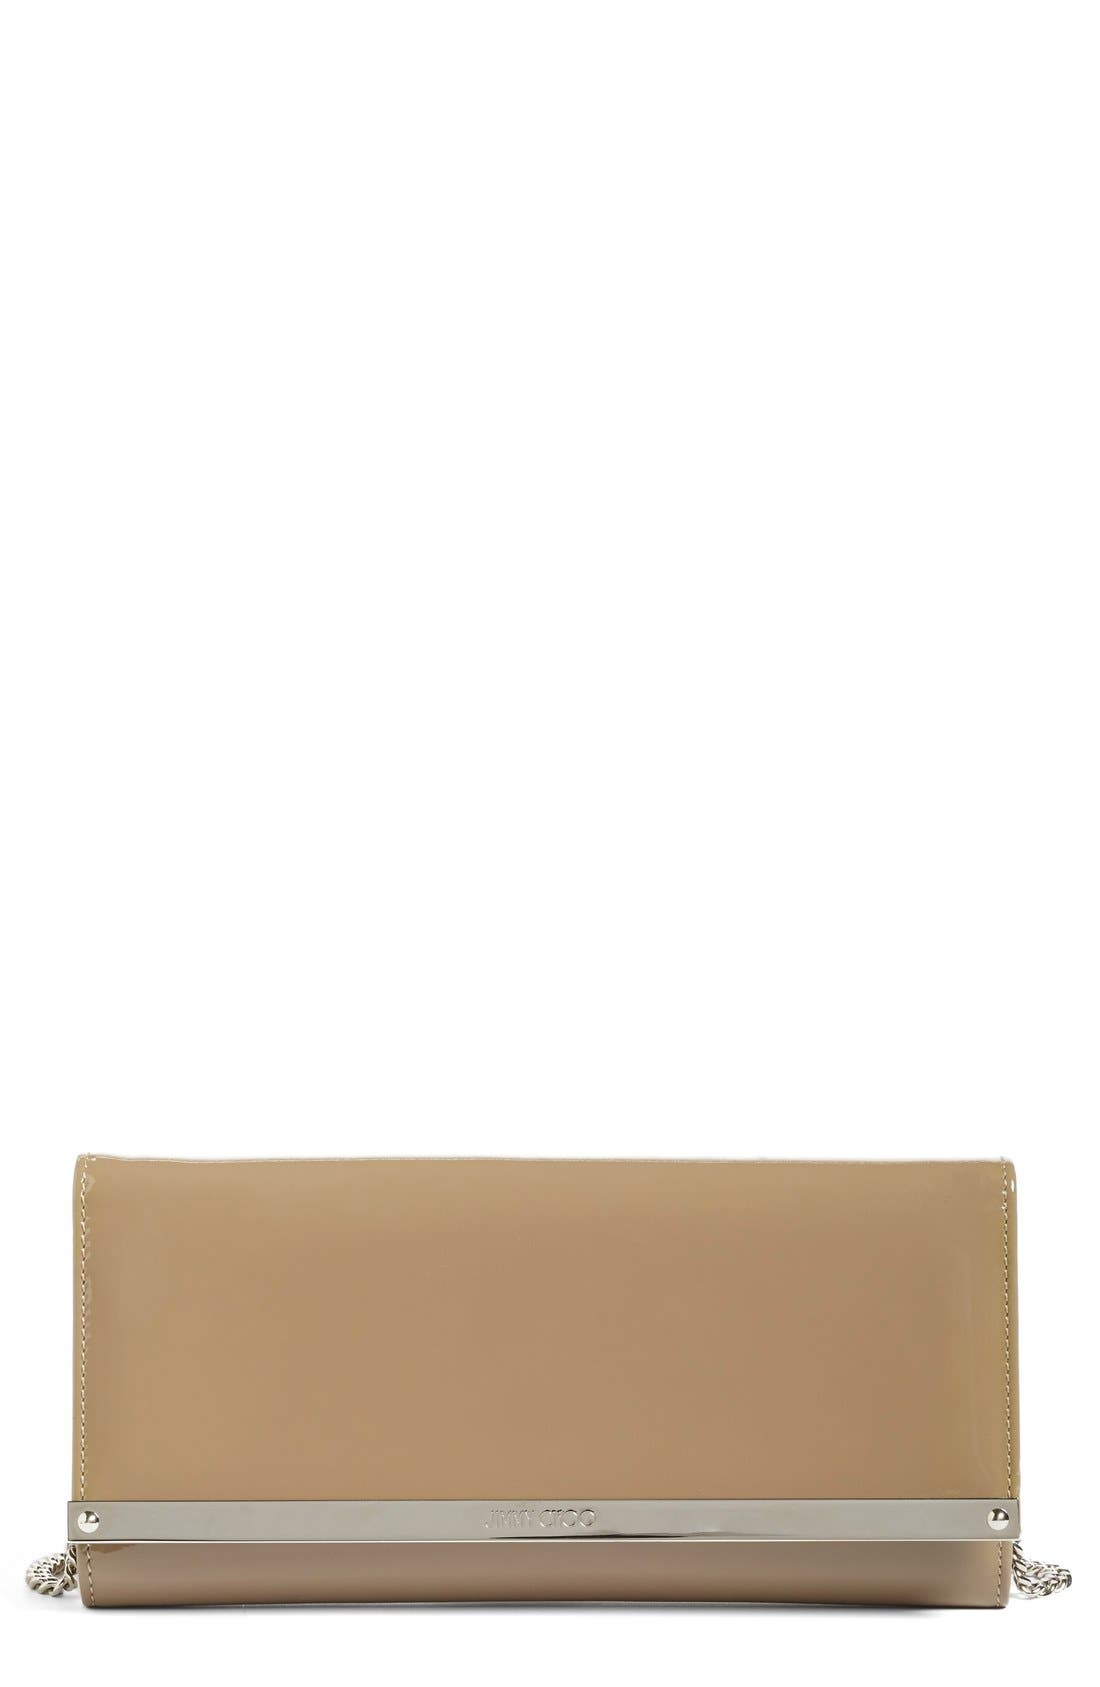 JIMMY CHOO 'Milla' Patent Leather Wallet on a